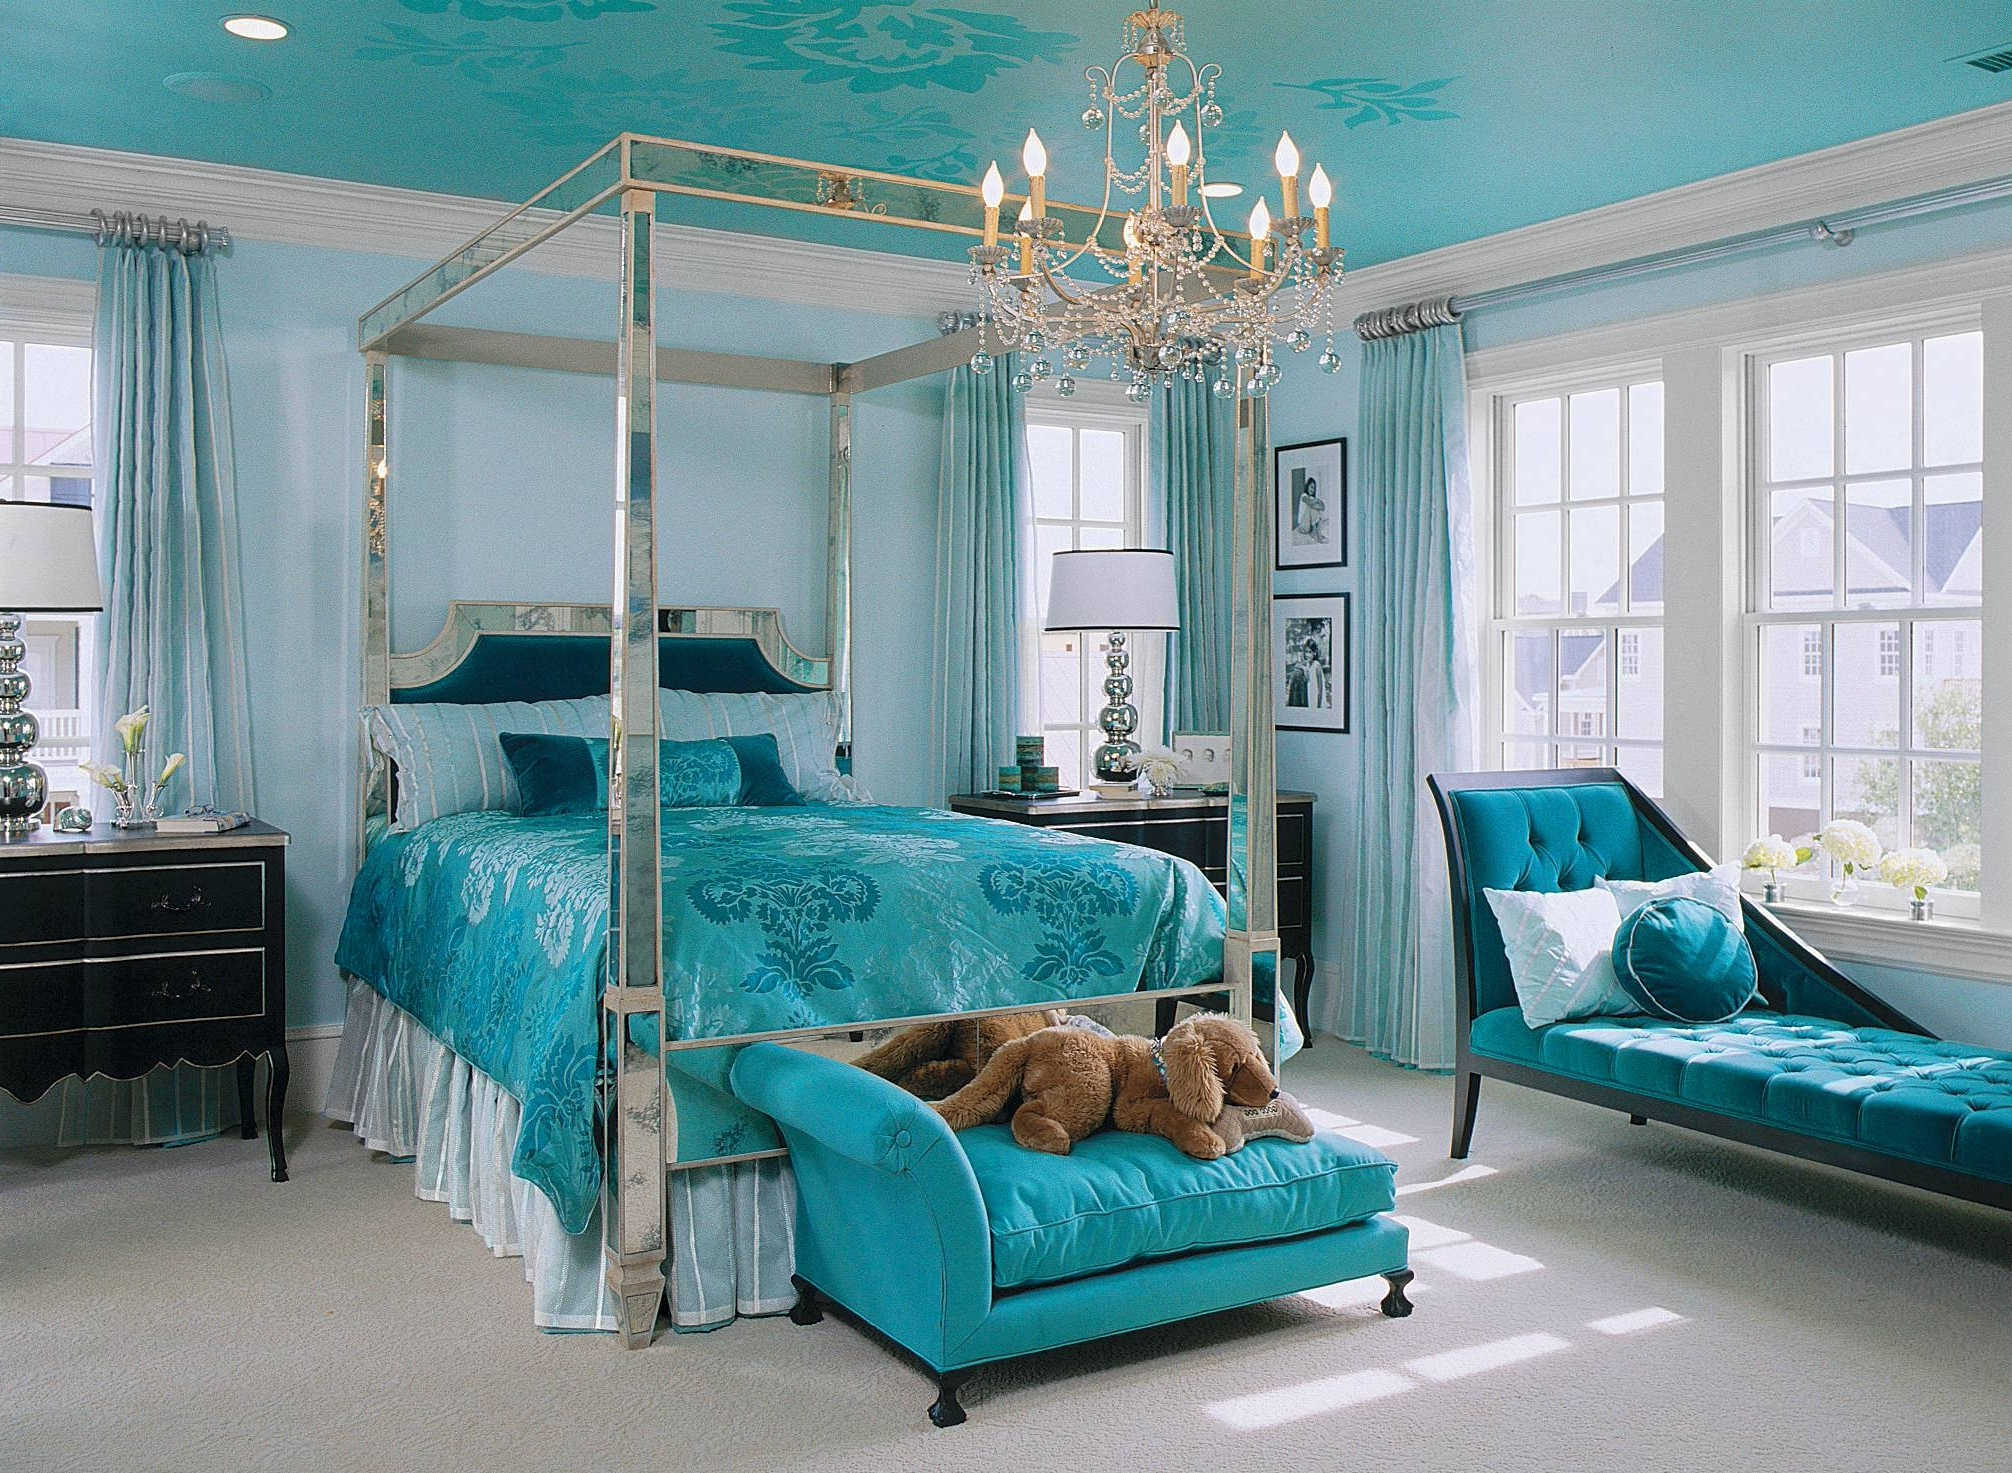 Bedroom: Turquoise Room Ideas For Modern Bedroom Design Idea With Recent Turquoise Bedroom Chandeliers (View 9 of 20)